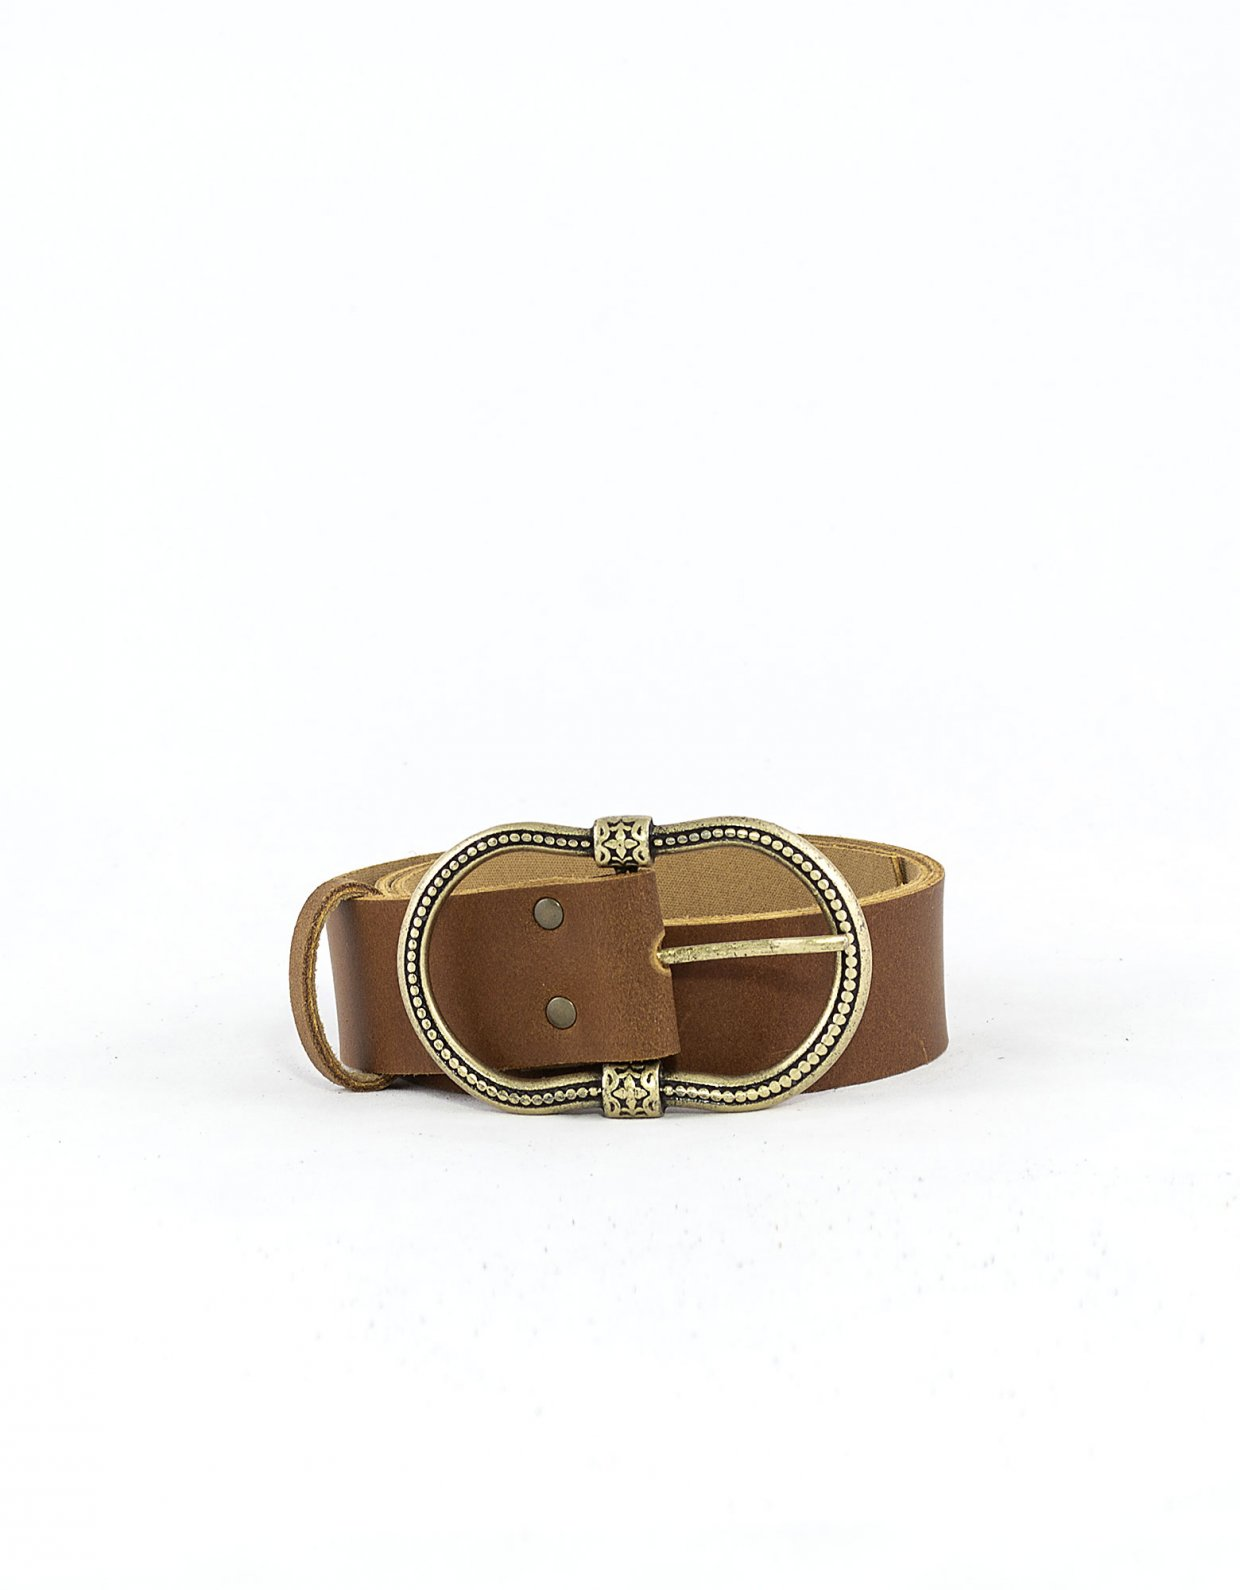 Peace & Chaos Balance belt tanned